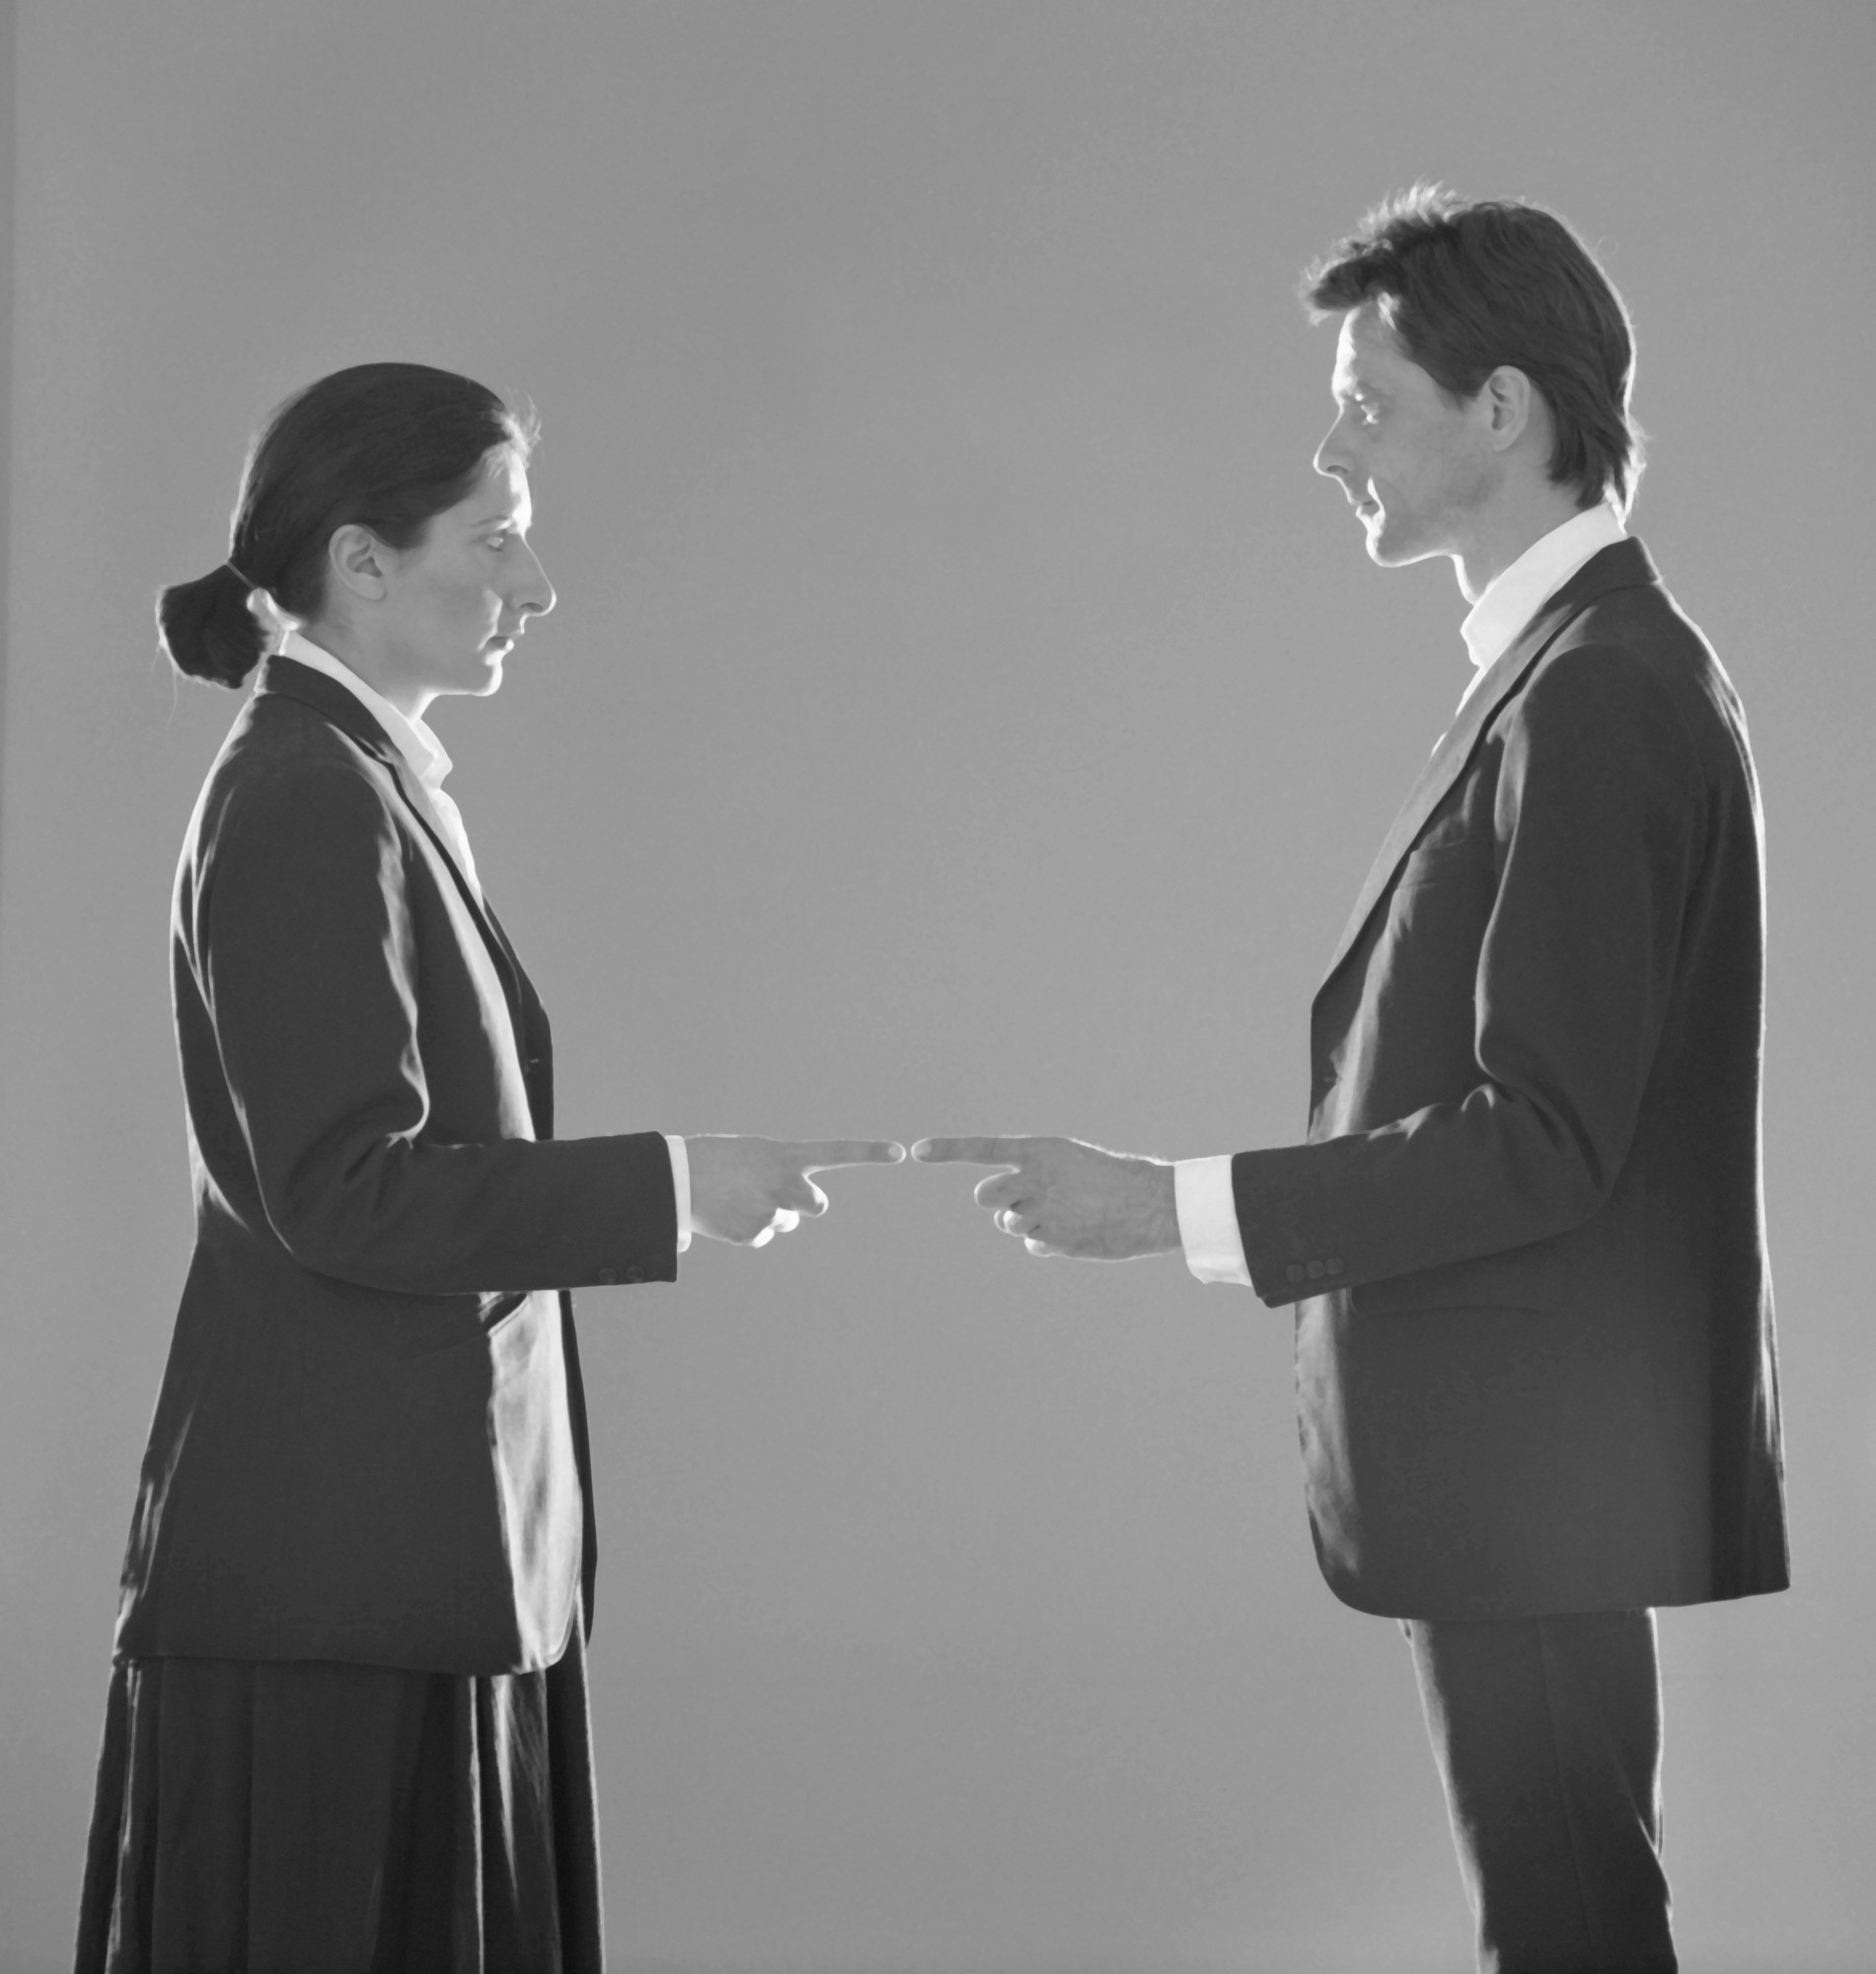 Marina Abramovic/Ulay. _Point of Contact_. 1980. Originally performed for 1 hour at De Appel Gallery, Amsterdam. Courtesy Marina Abramovic Archive and Sean Kelly Gallery, New York. © 2009 Marina Abramovic